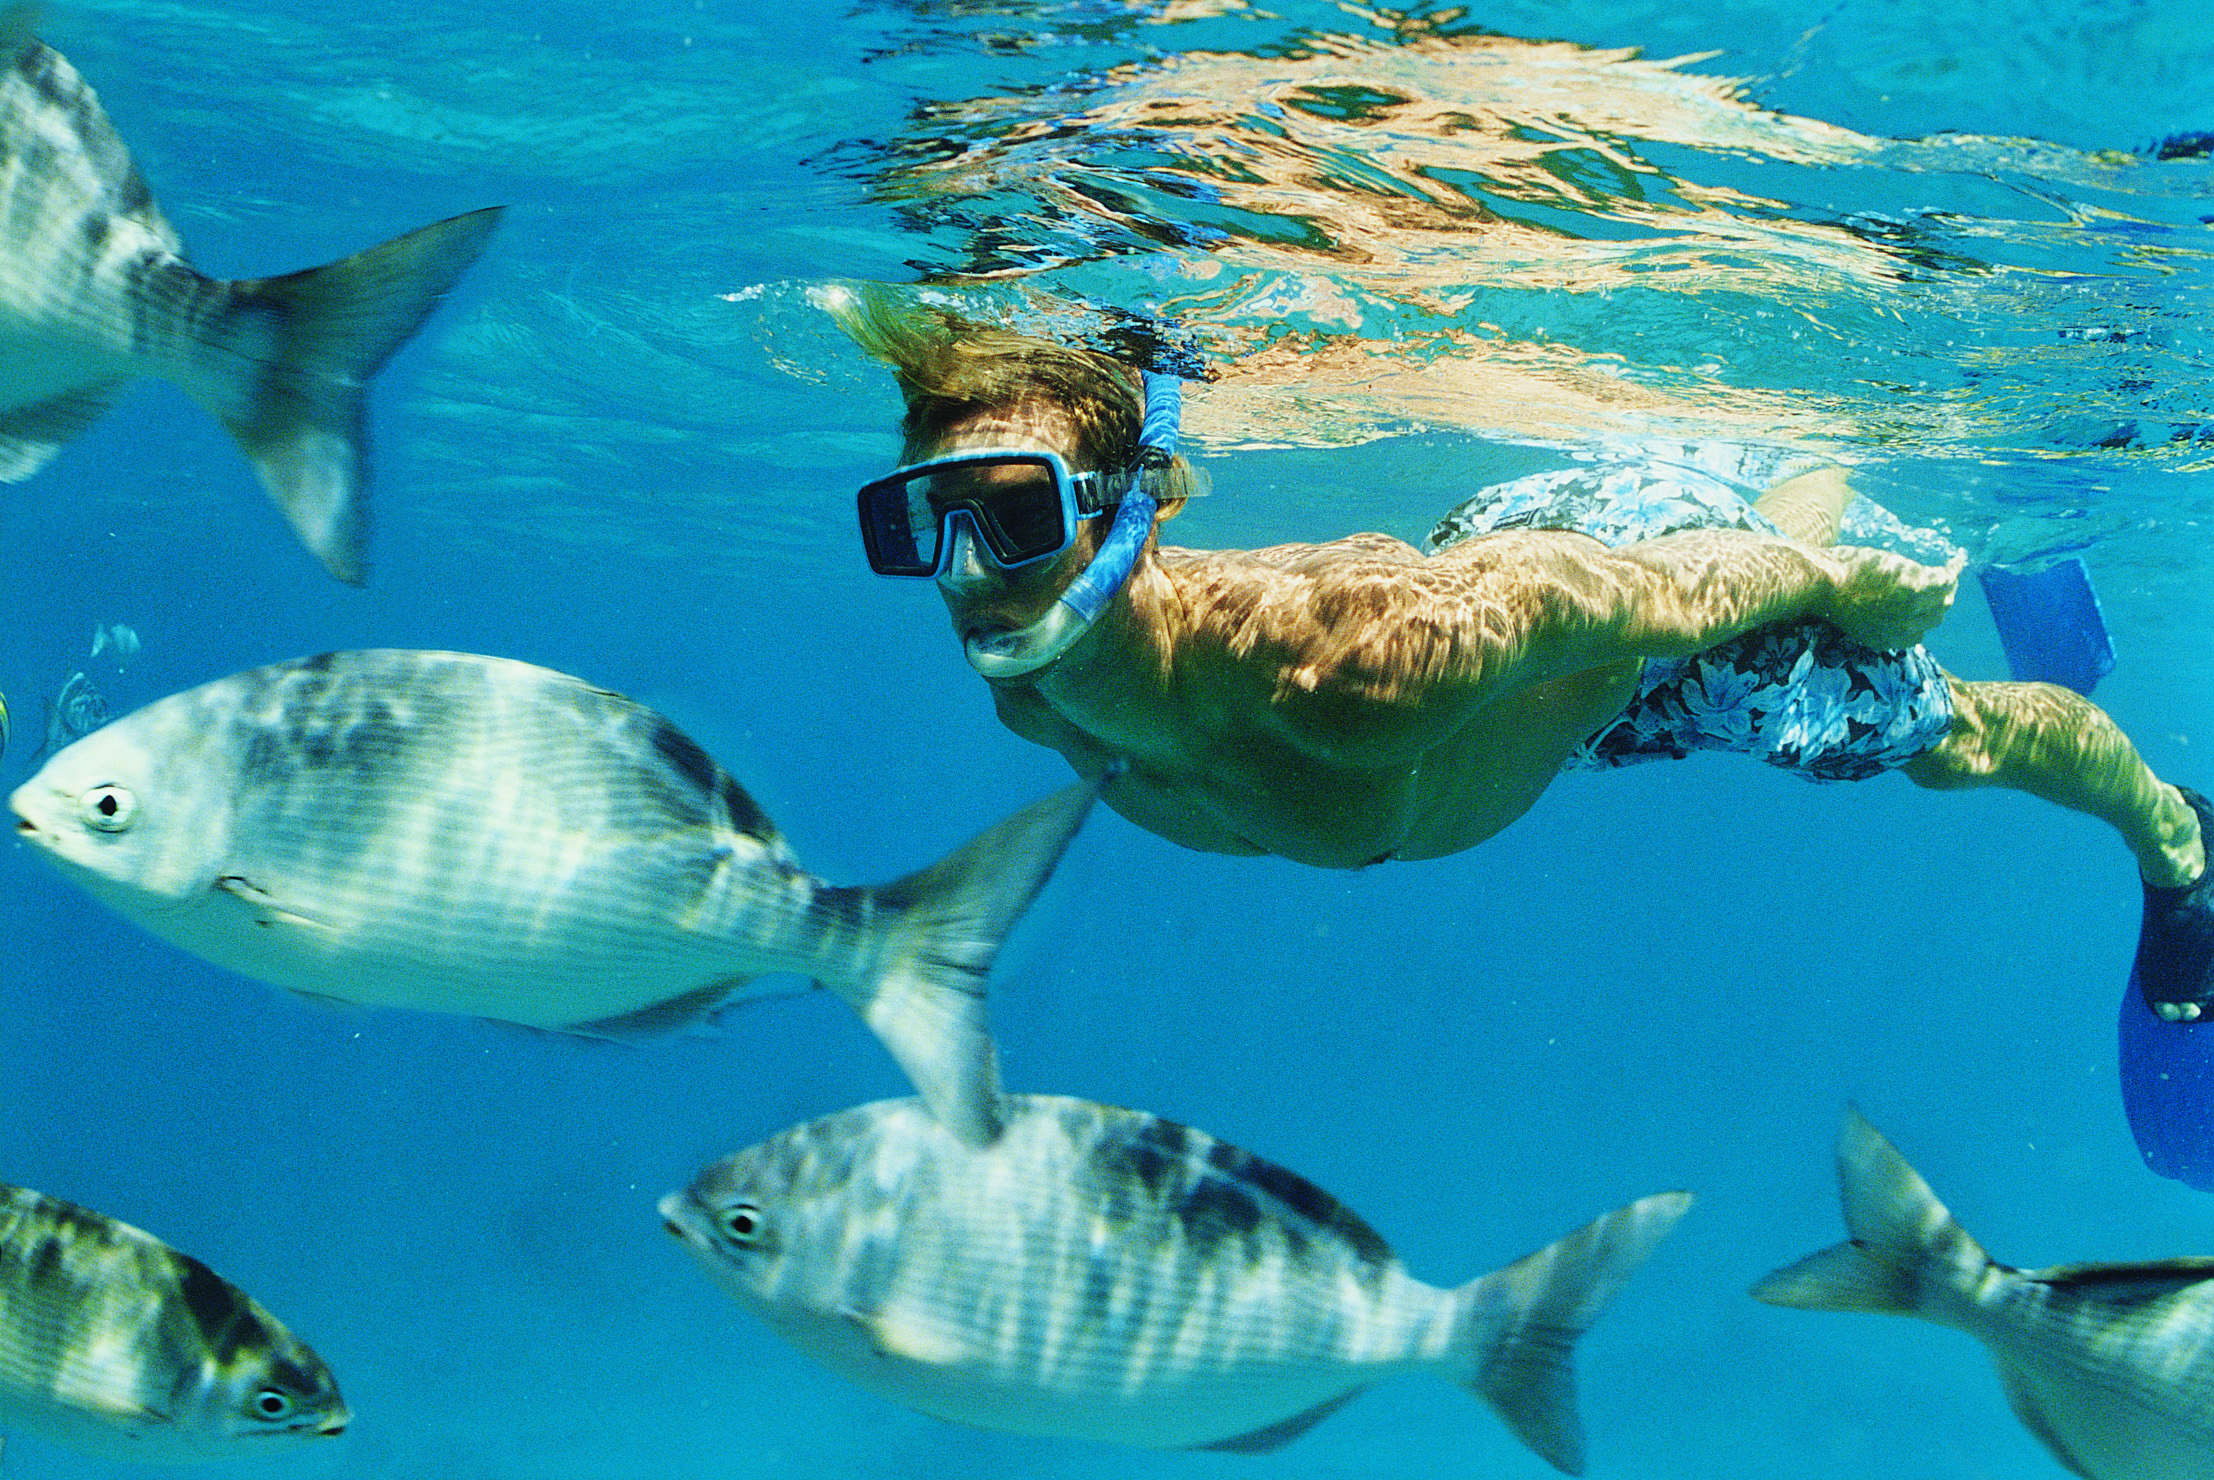 Snorkeling at the Destin Jetties in Florida | USA Today